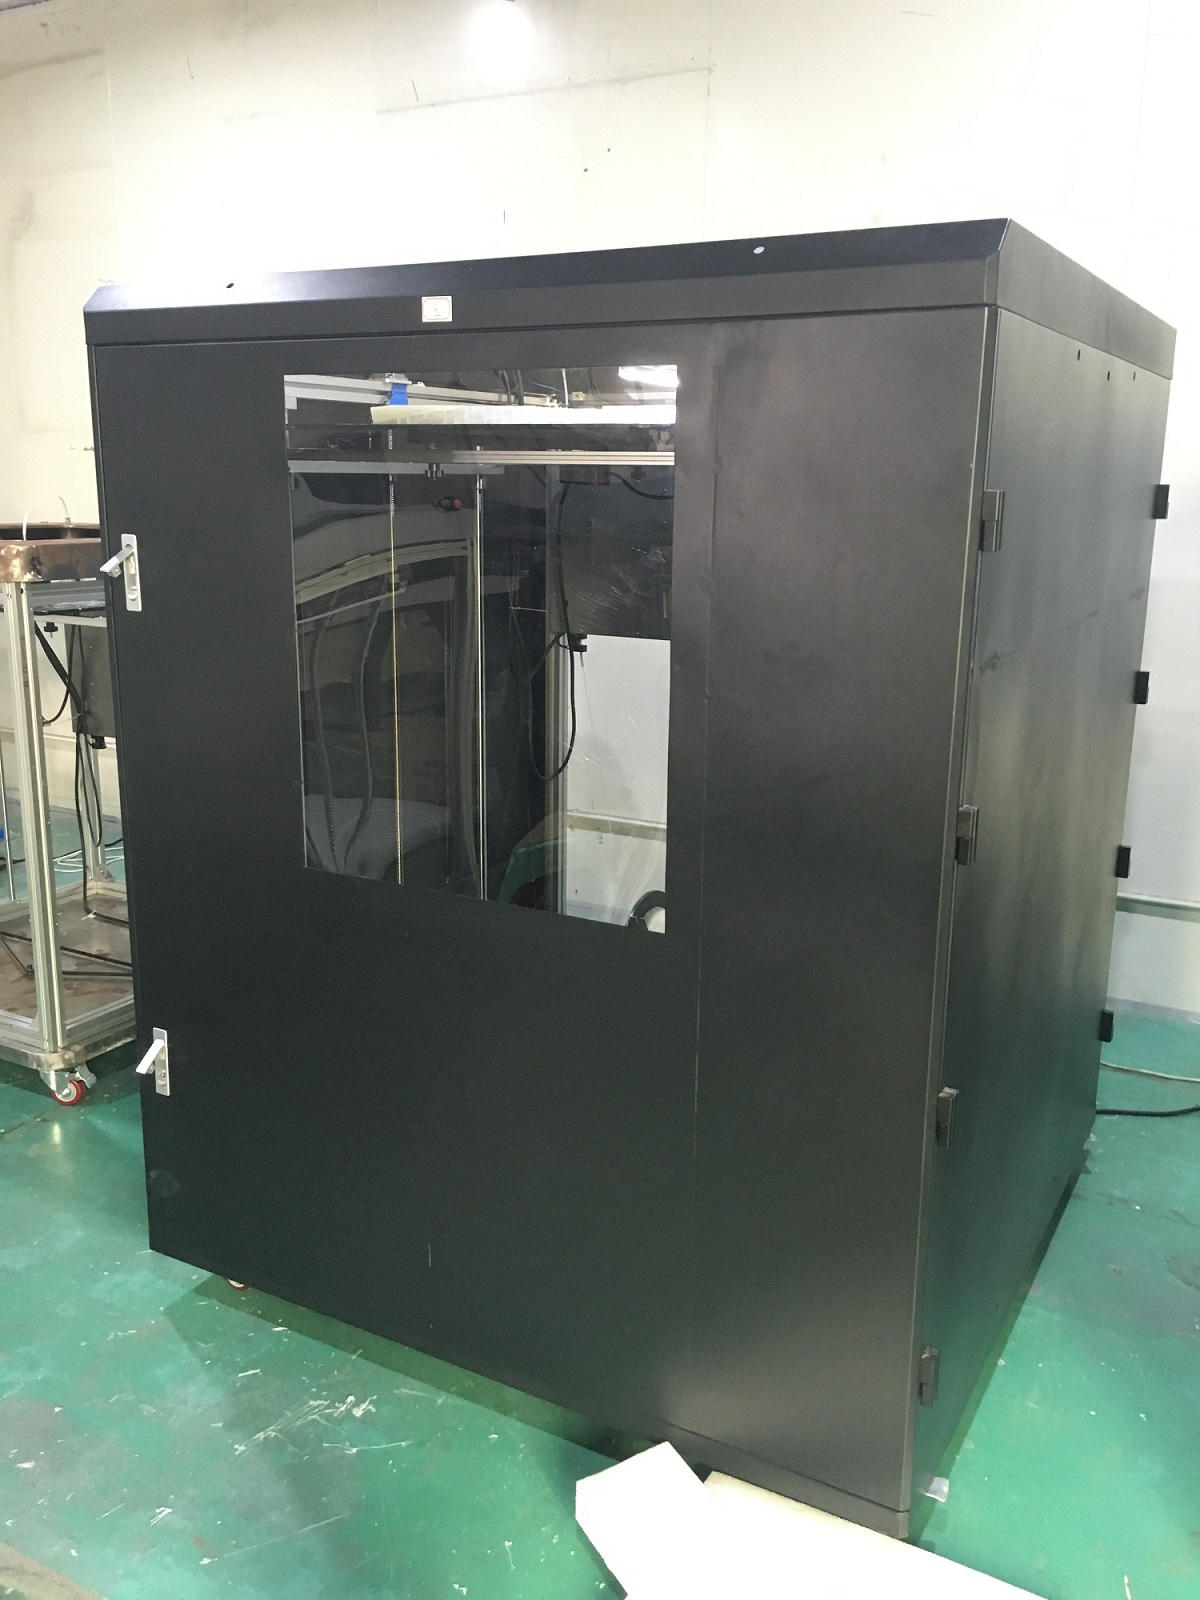 INDIA'S LARGEST INDUSTRIAL FDM 3D PRINTER